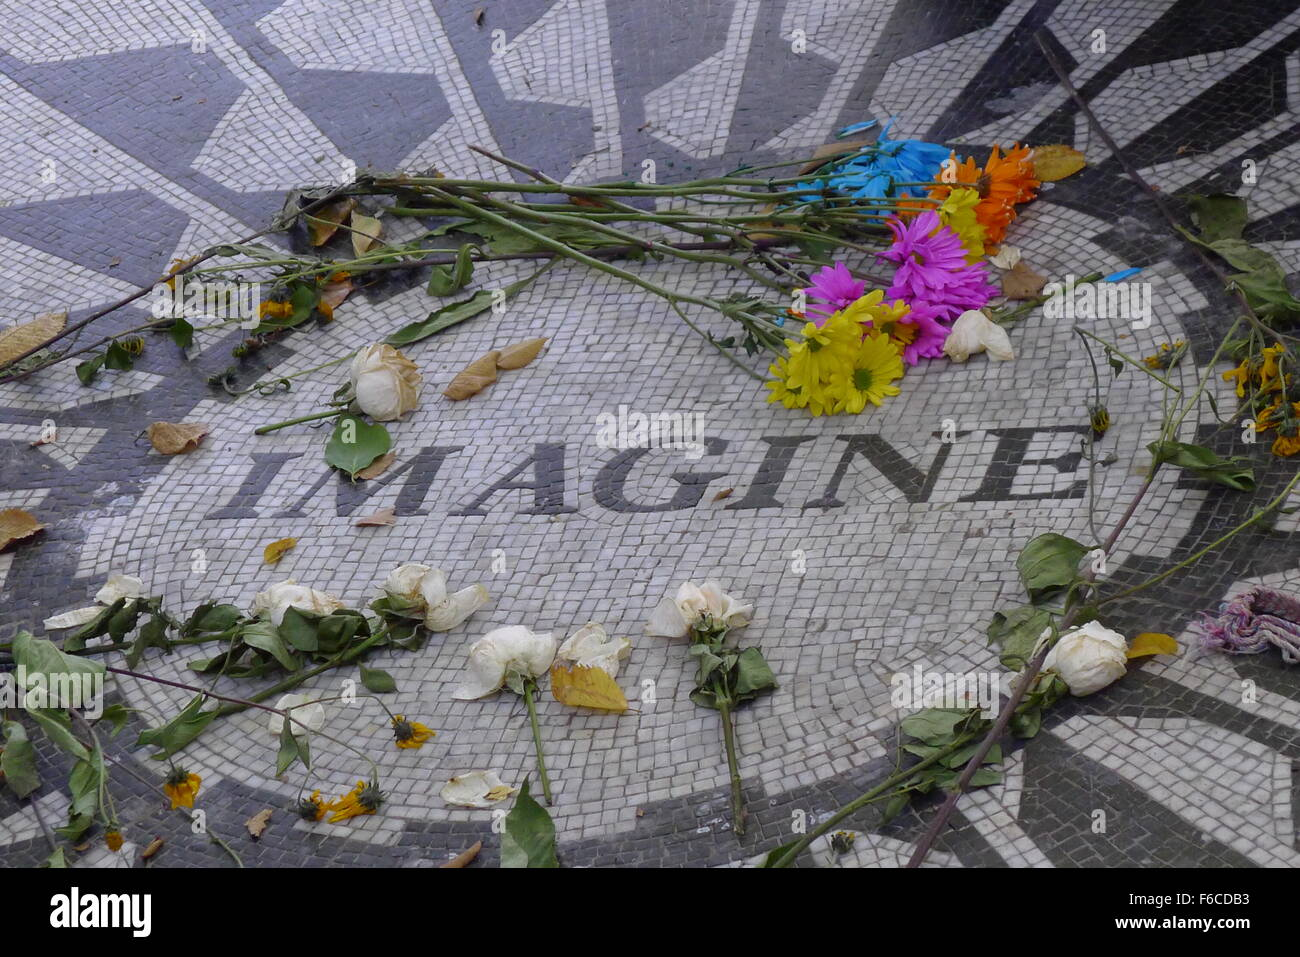 Imagine Mosaic on Strawberry Fields in Central Park Stock Photo